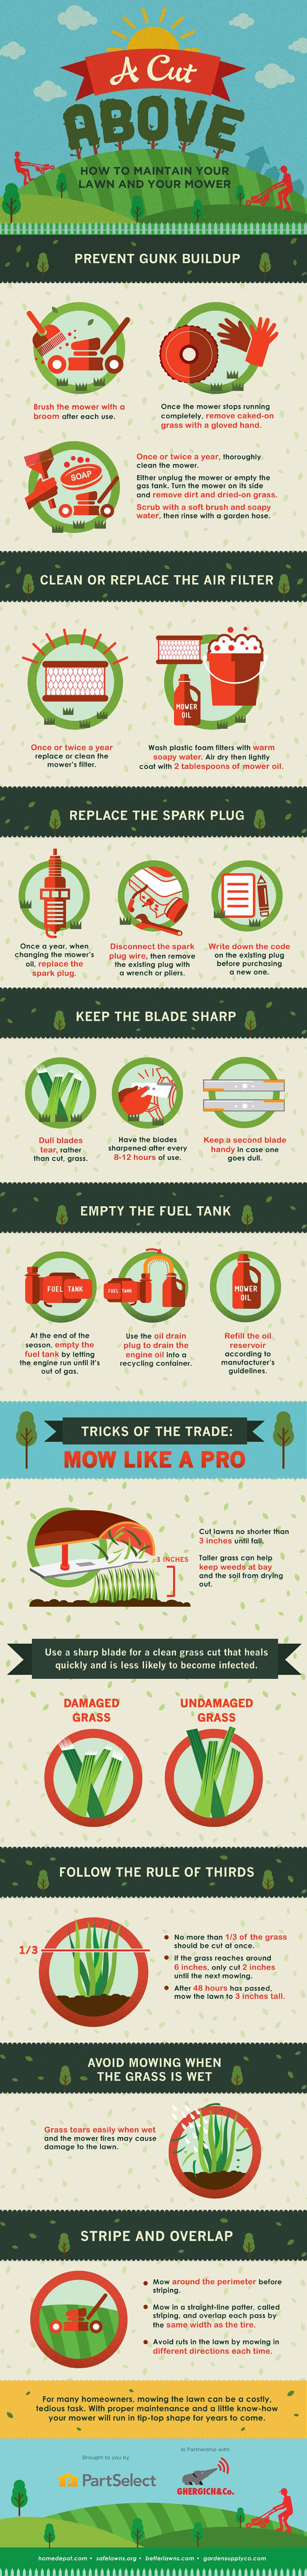 (Infographic) How To Maintain Mowers Year Round Lawn